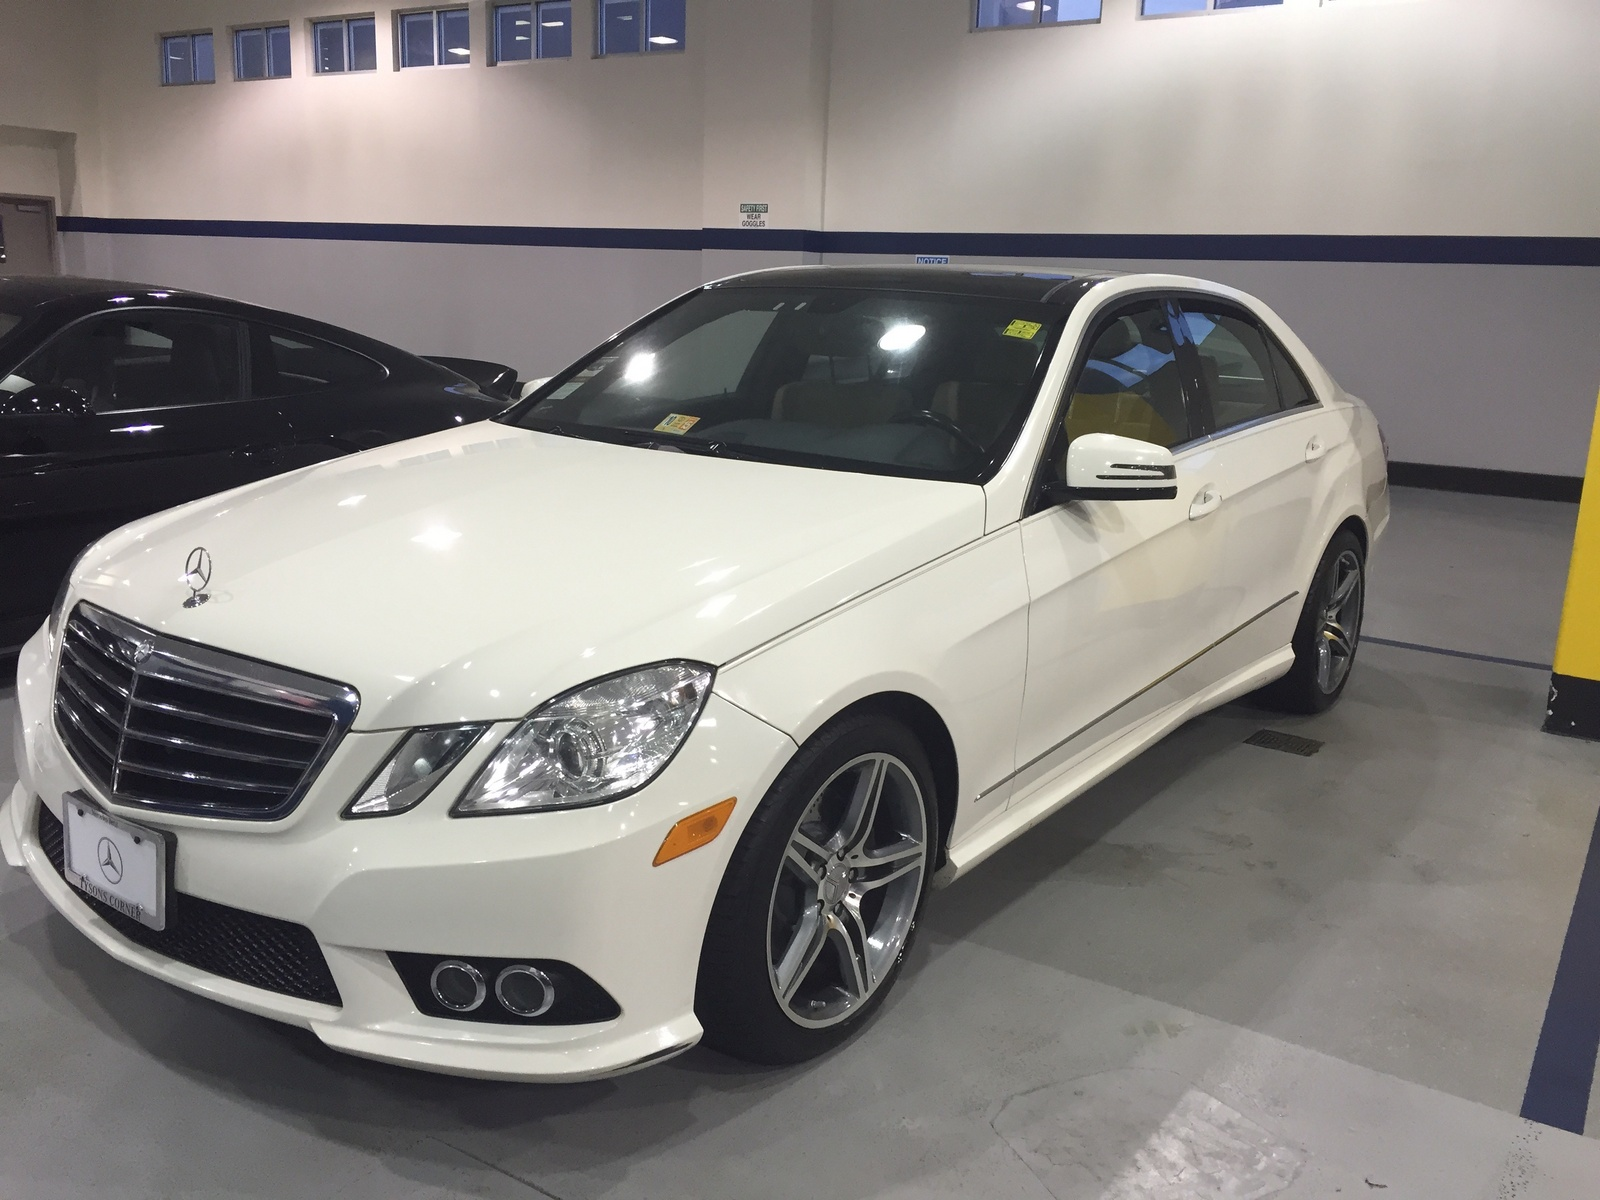 Picture of 2010 mercedes benz e class e350 sport exterior for 2010 mercedes benz e class e350 price